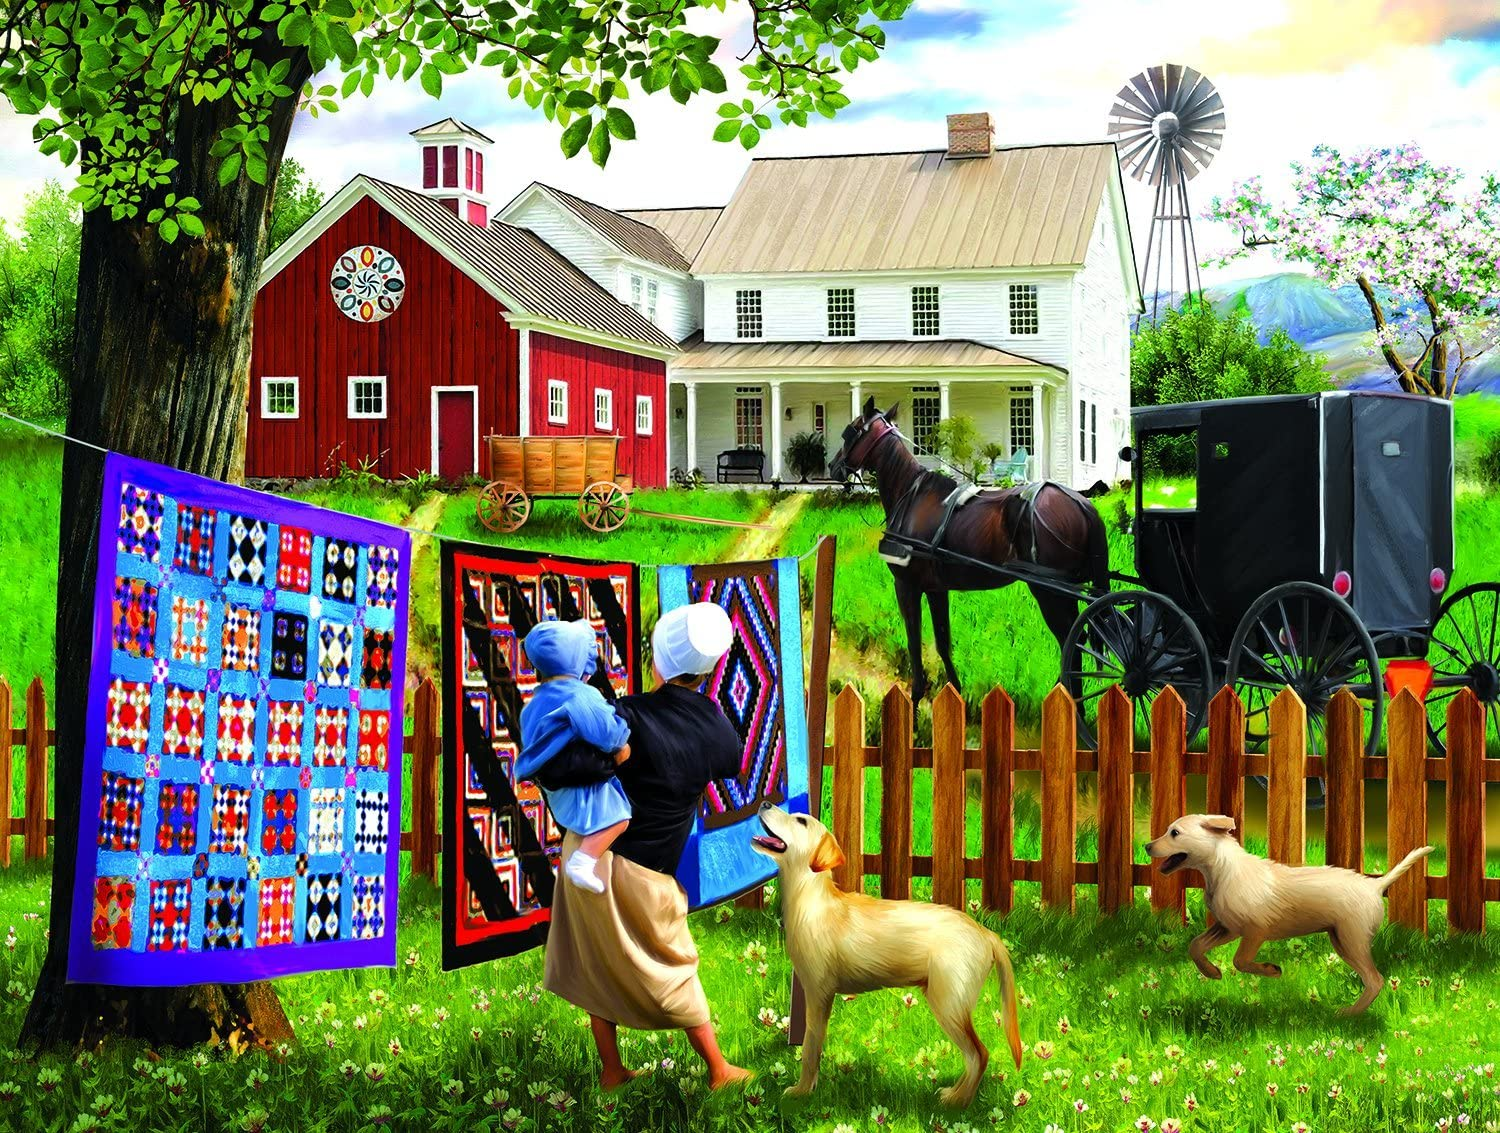 Family Homestead 500 pc Jigsaw Puzzle by SunsOut